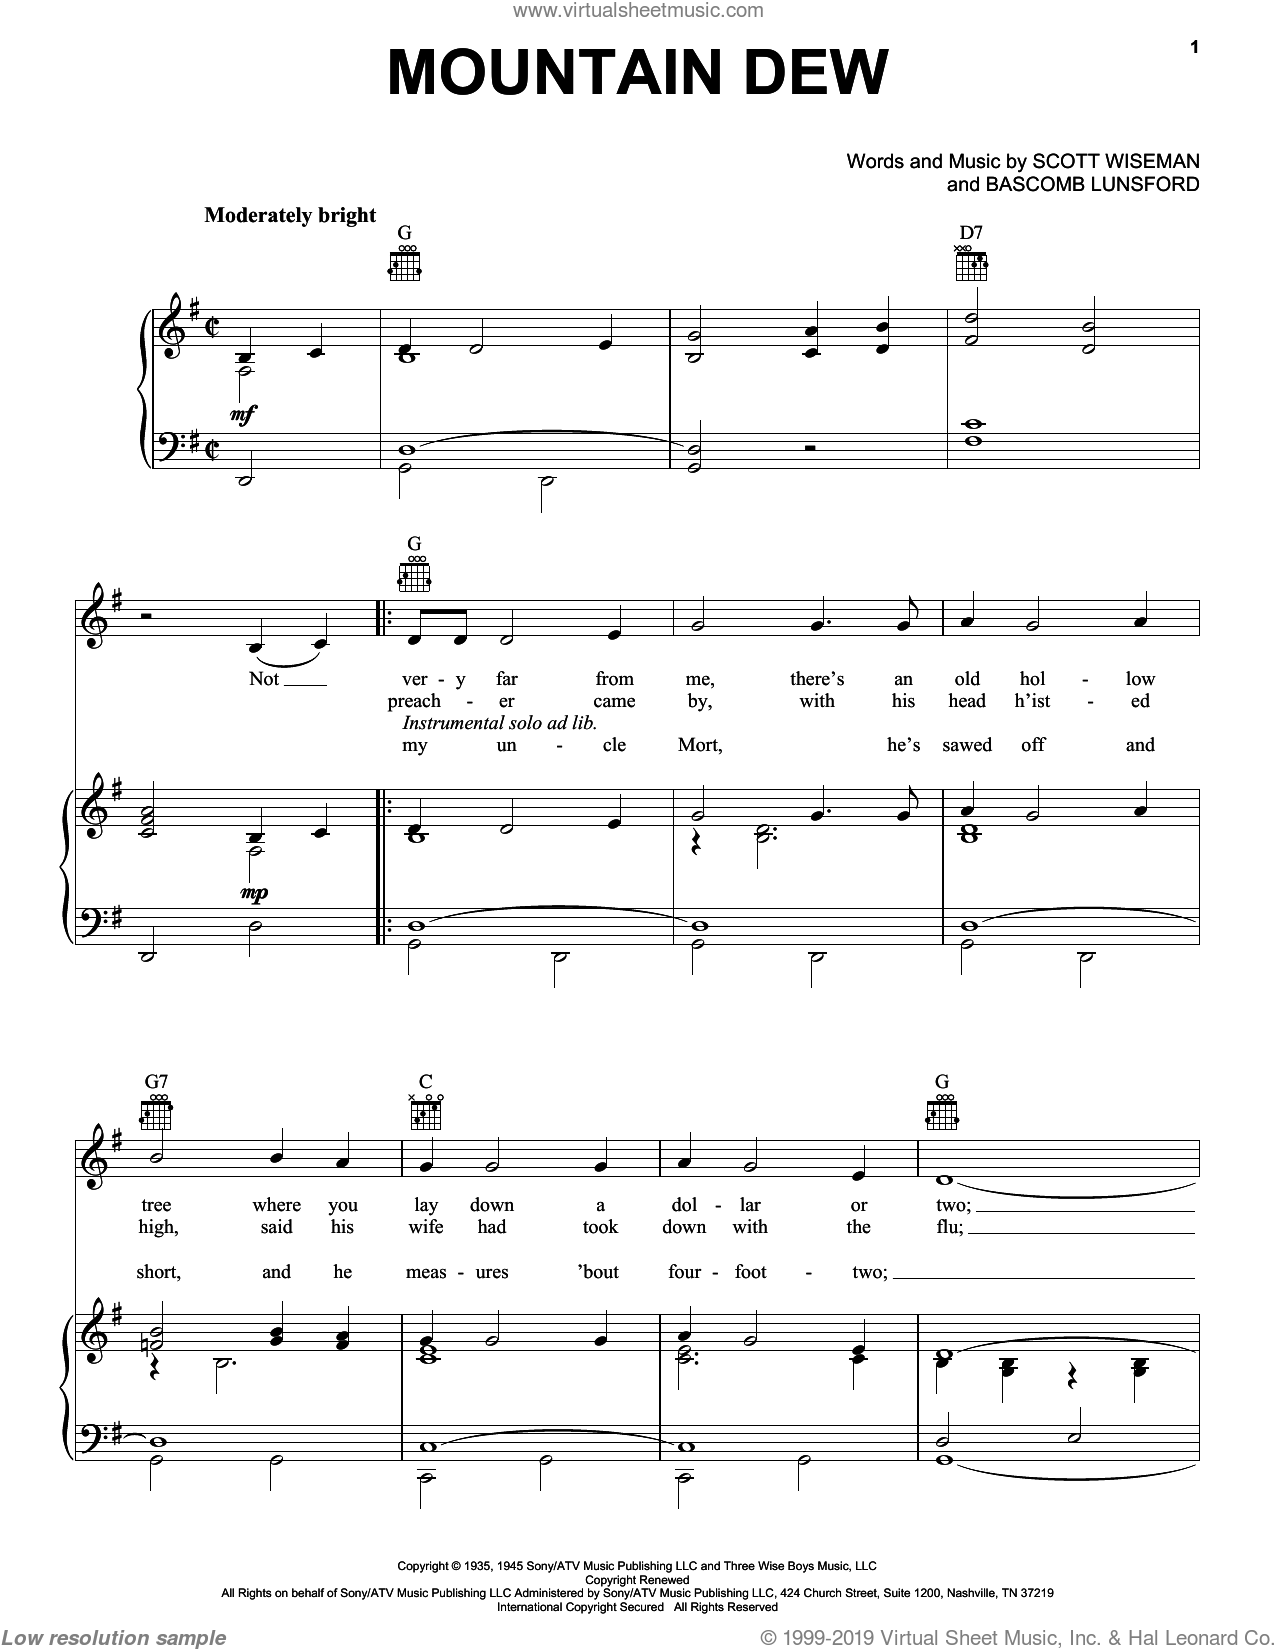 Mountain Dew sheet music for voice, piano or guitar by Scott Wiseman